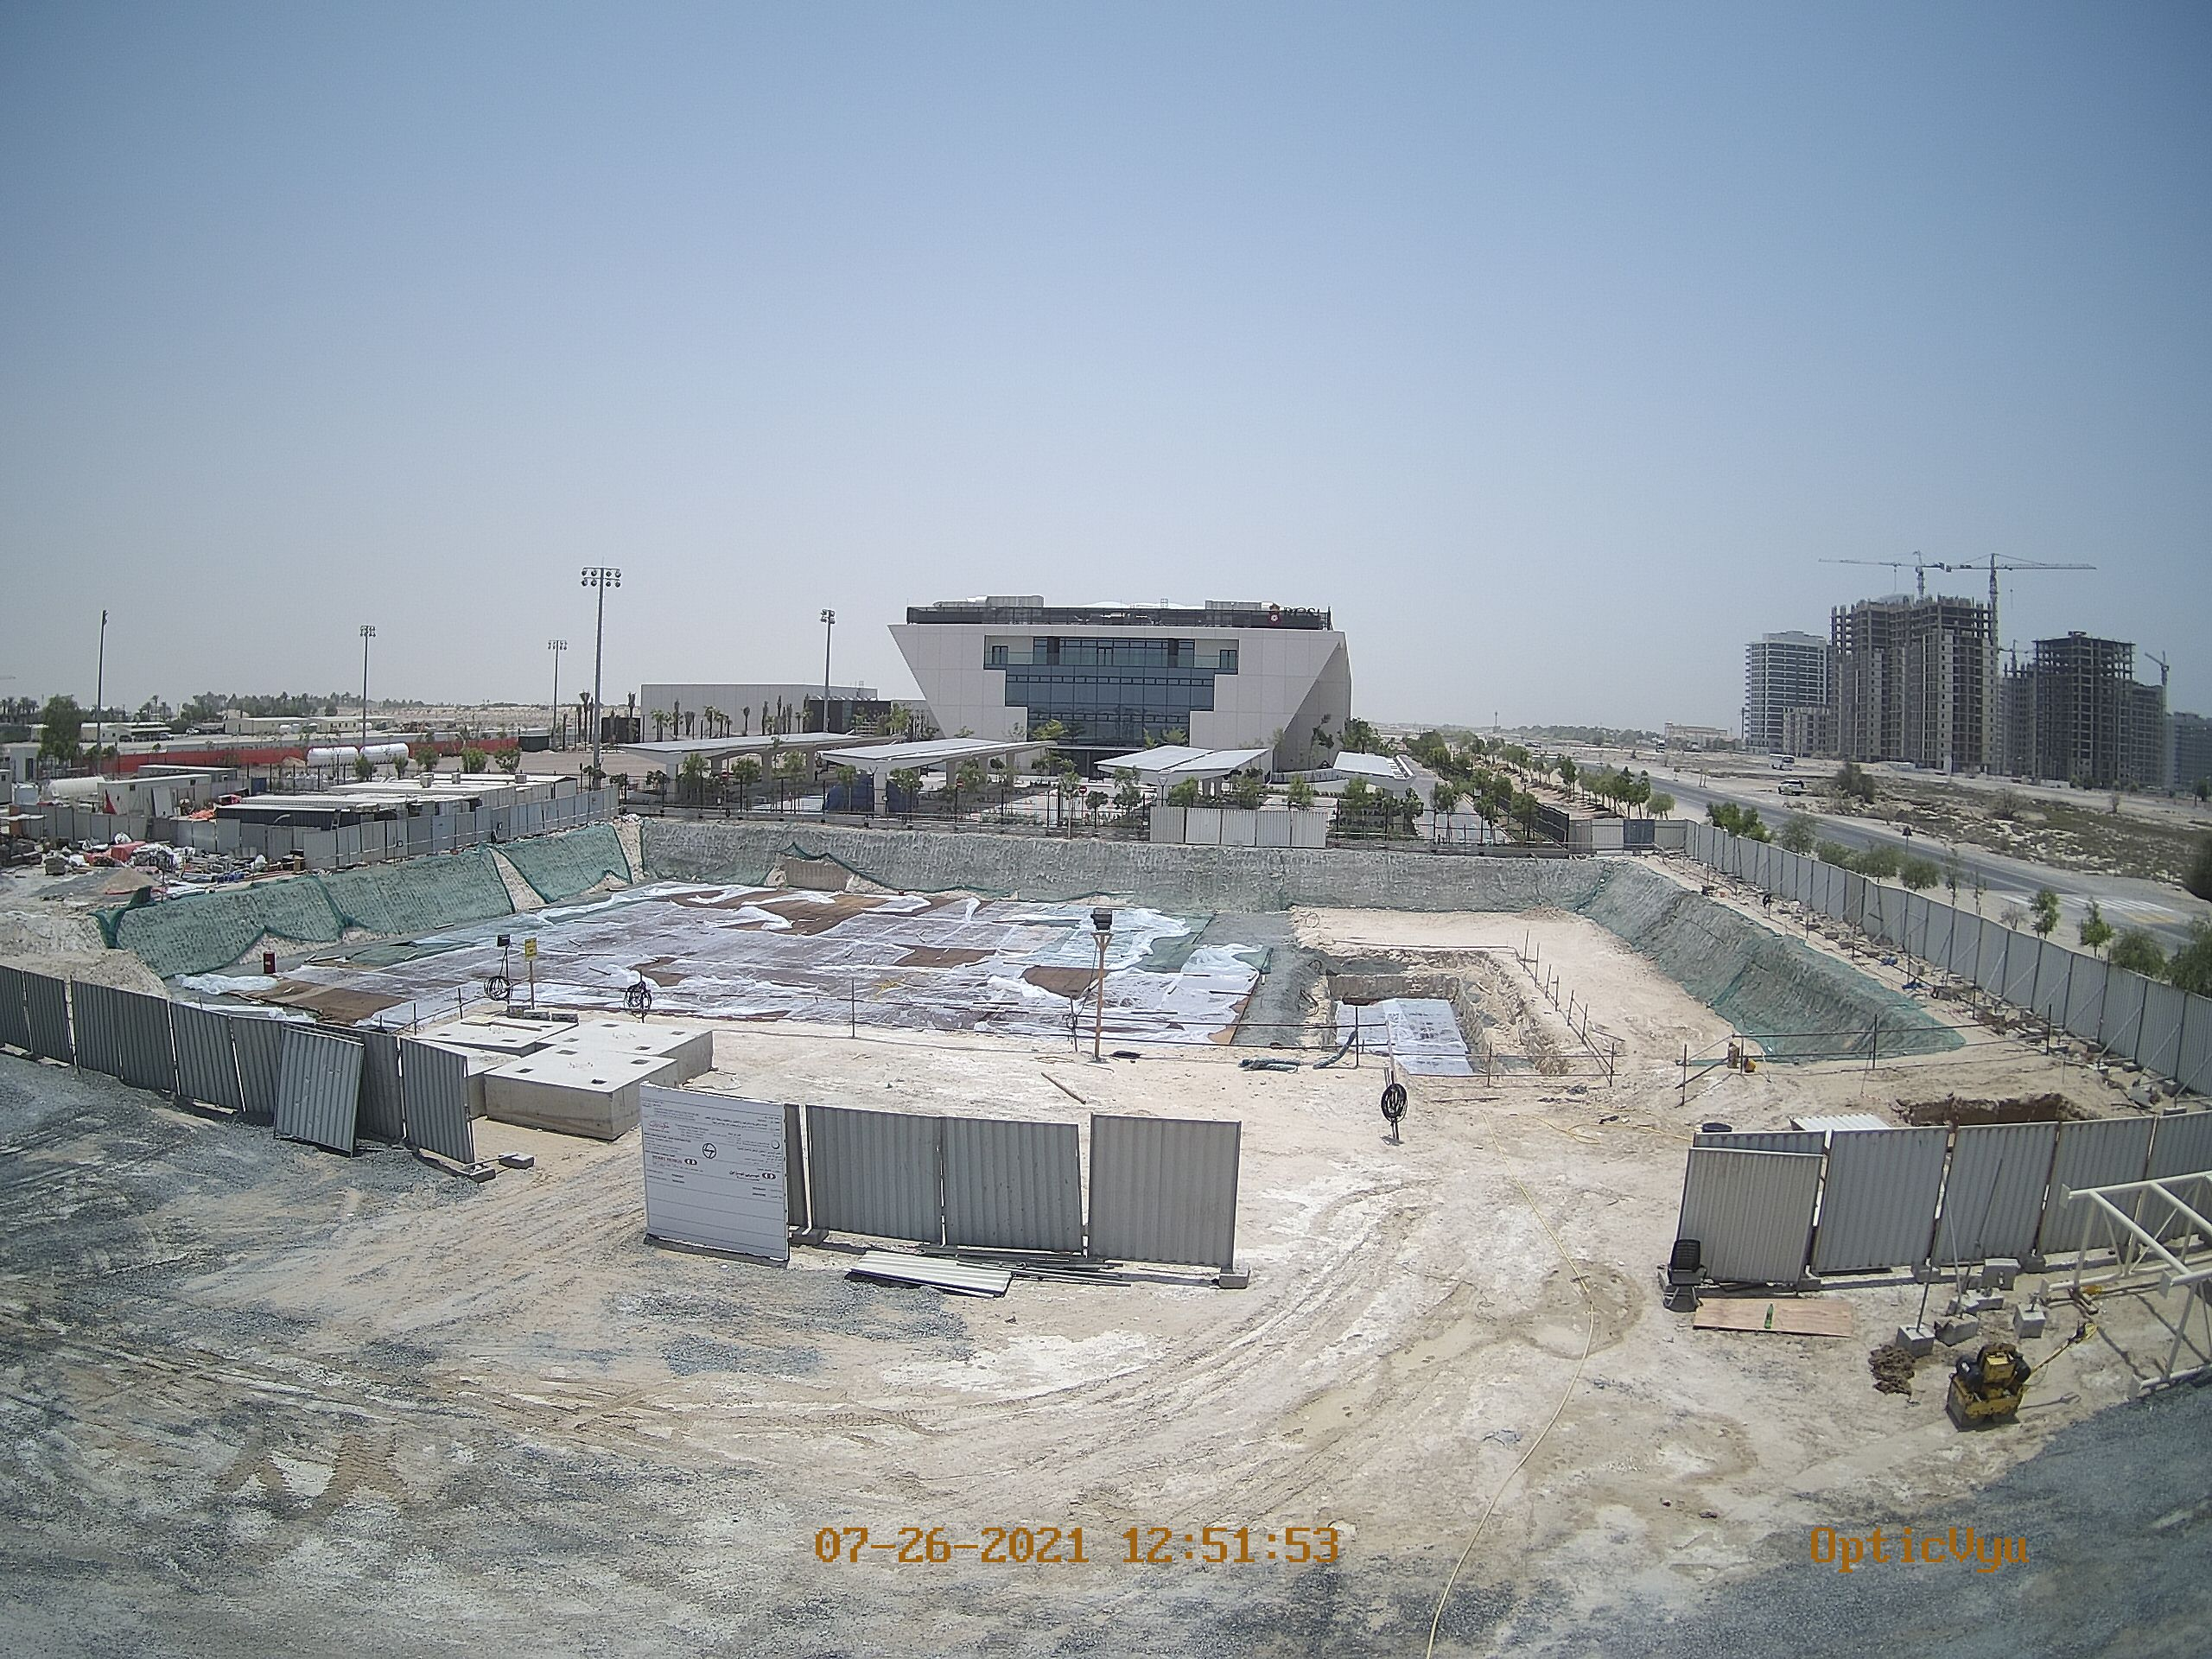 apcrda project office construction cam image